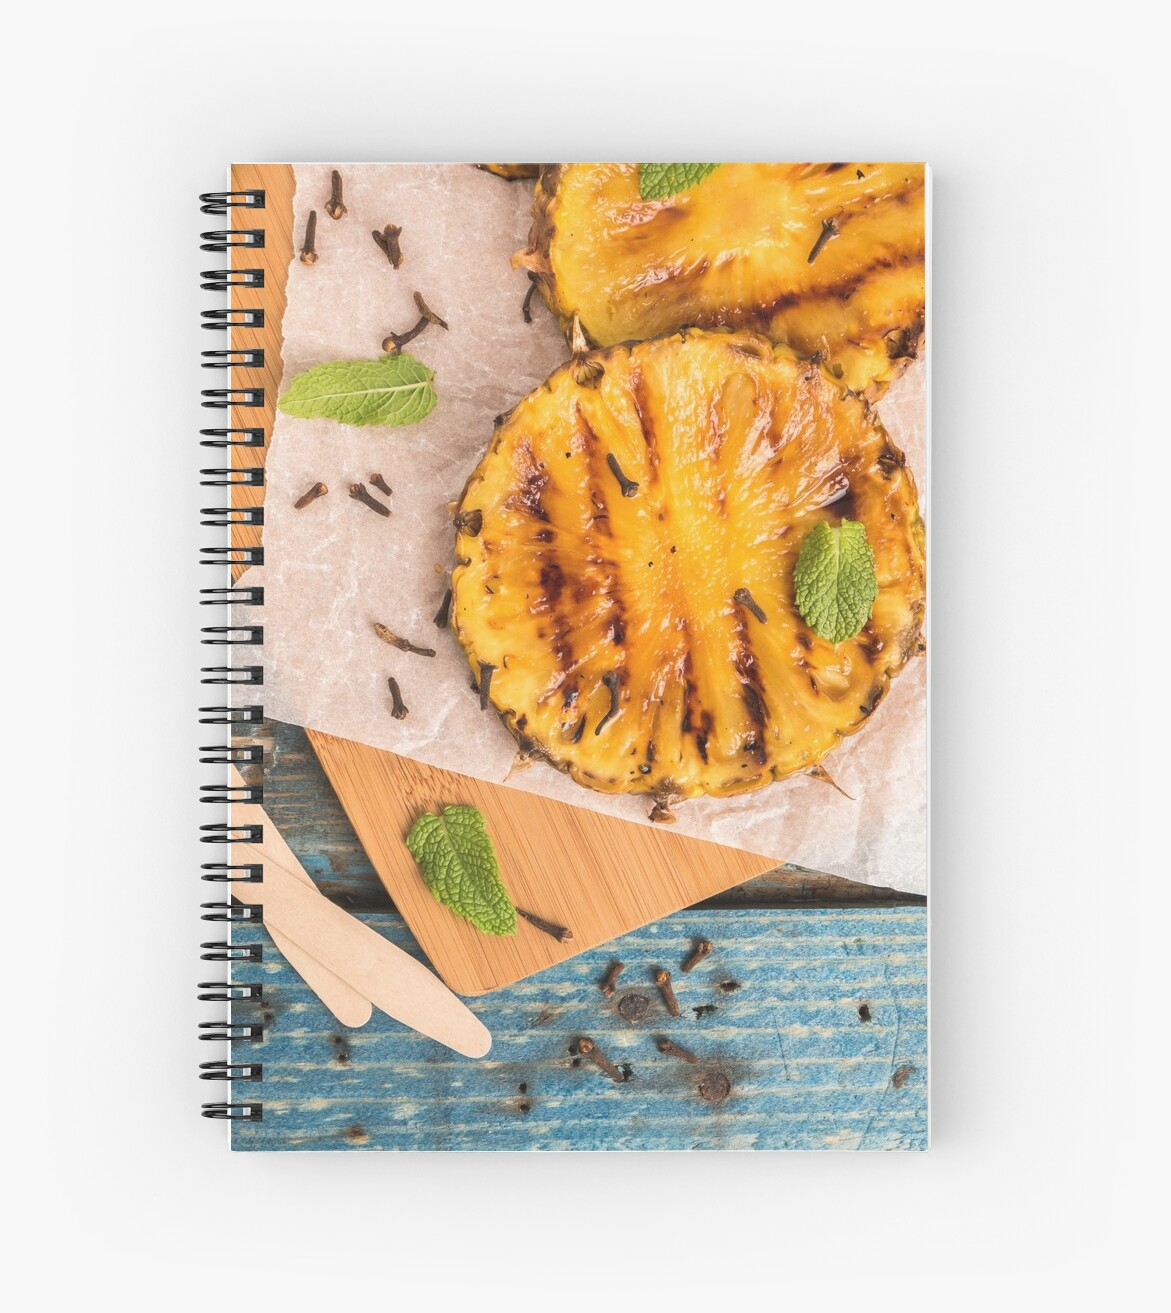 Grilled pineapple slices by homydesign